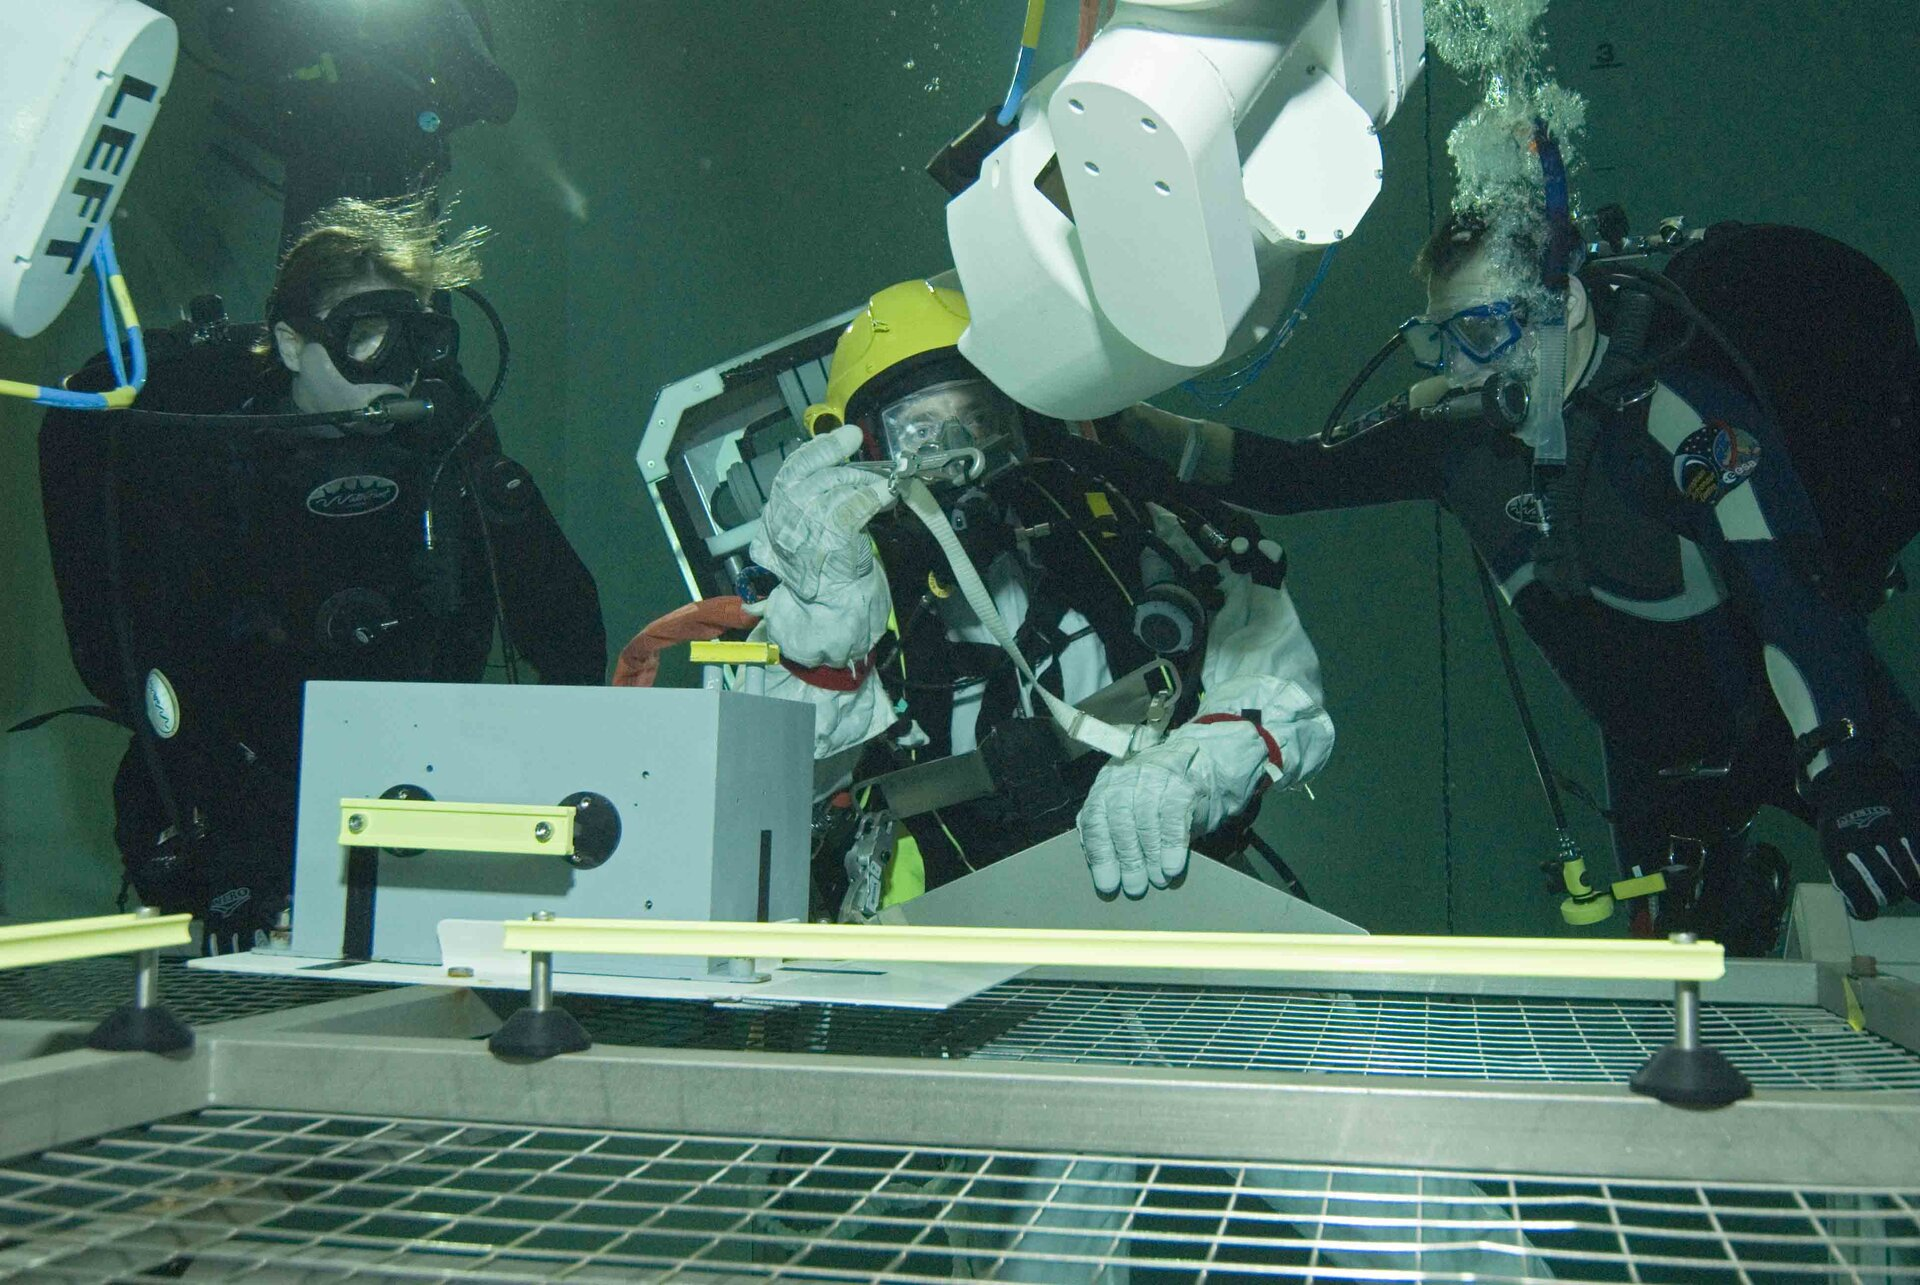 Eurobot could play an important role in EVA support - here Eurobot hands a tool to the astronaut